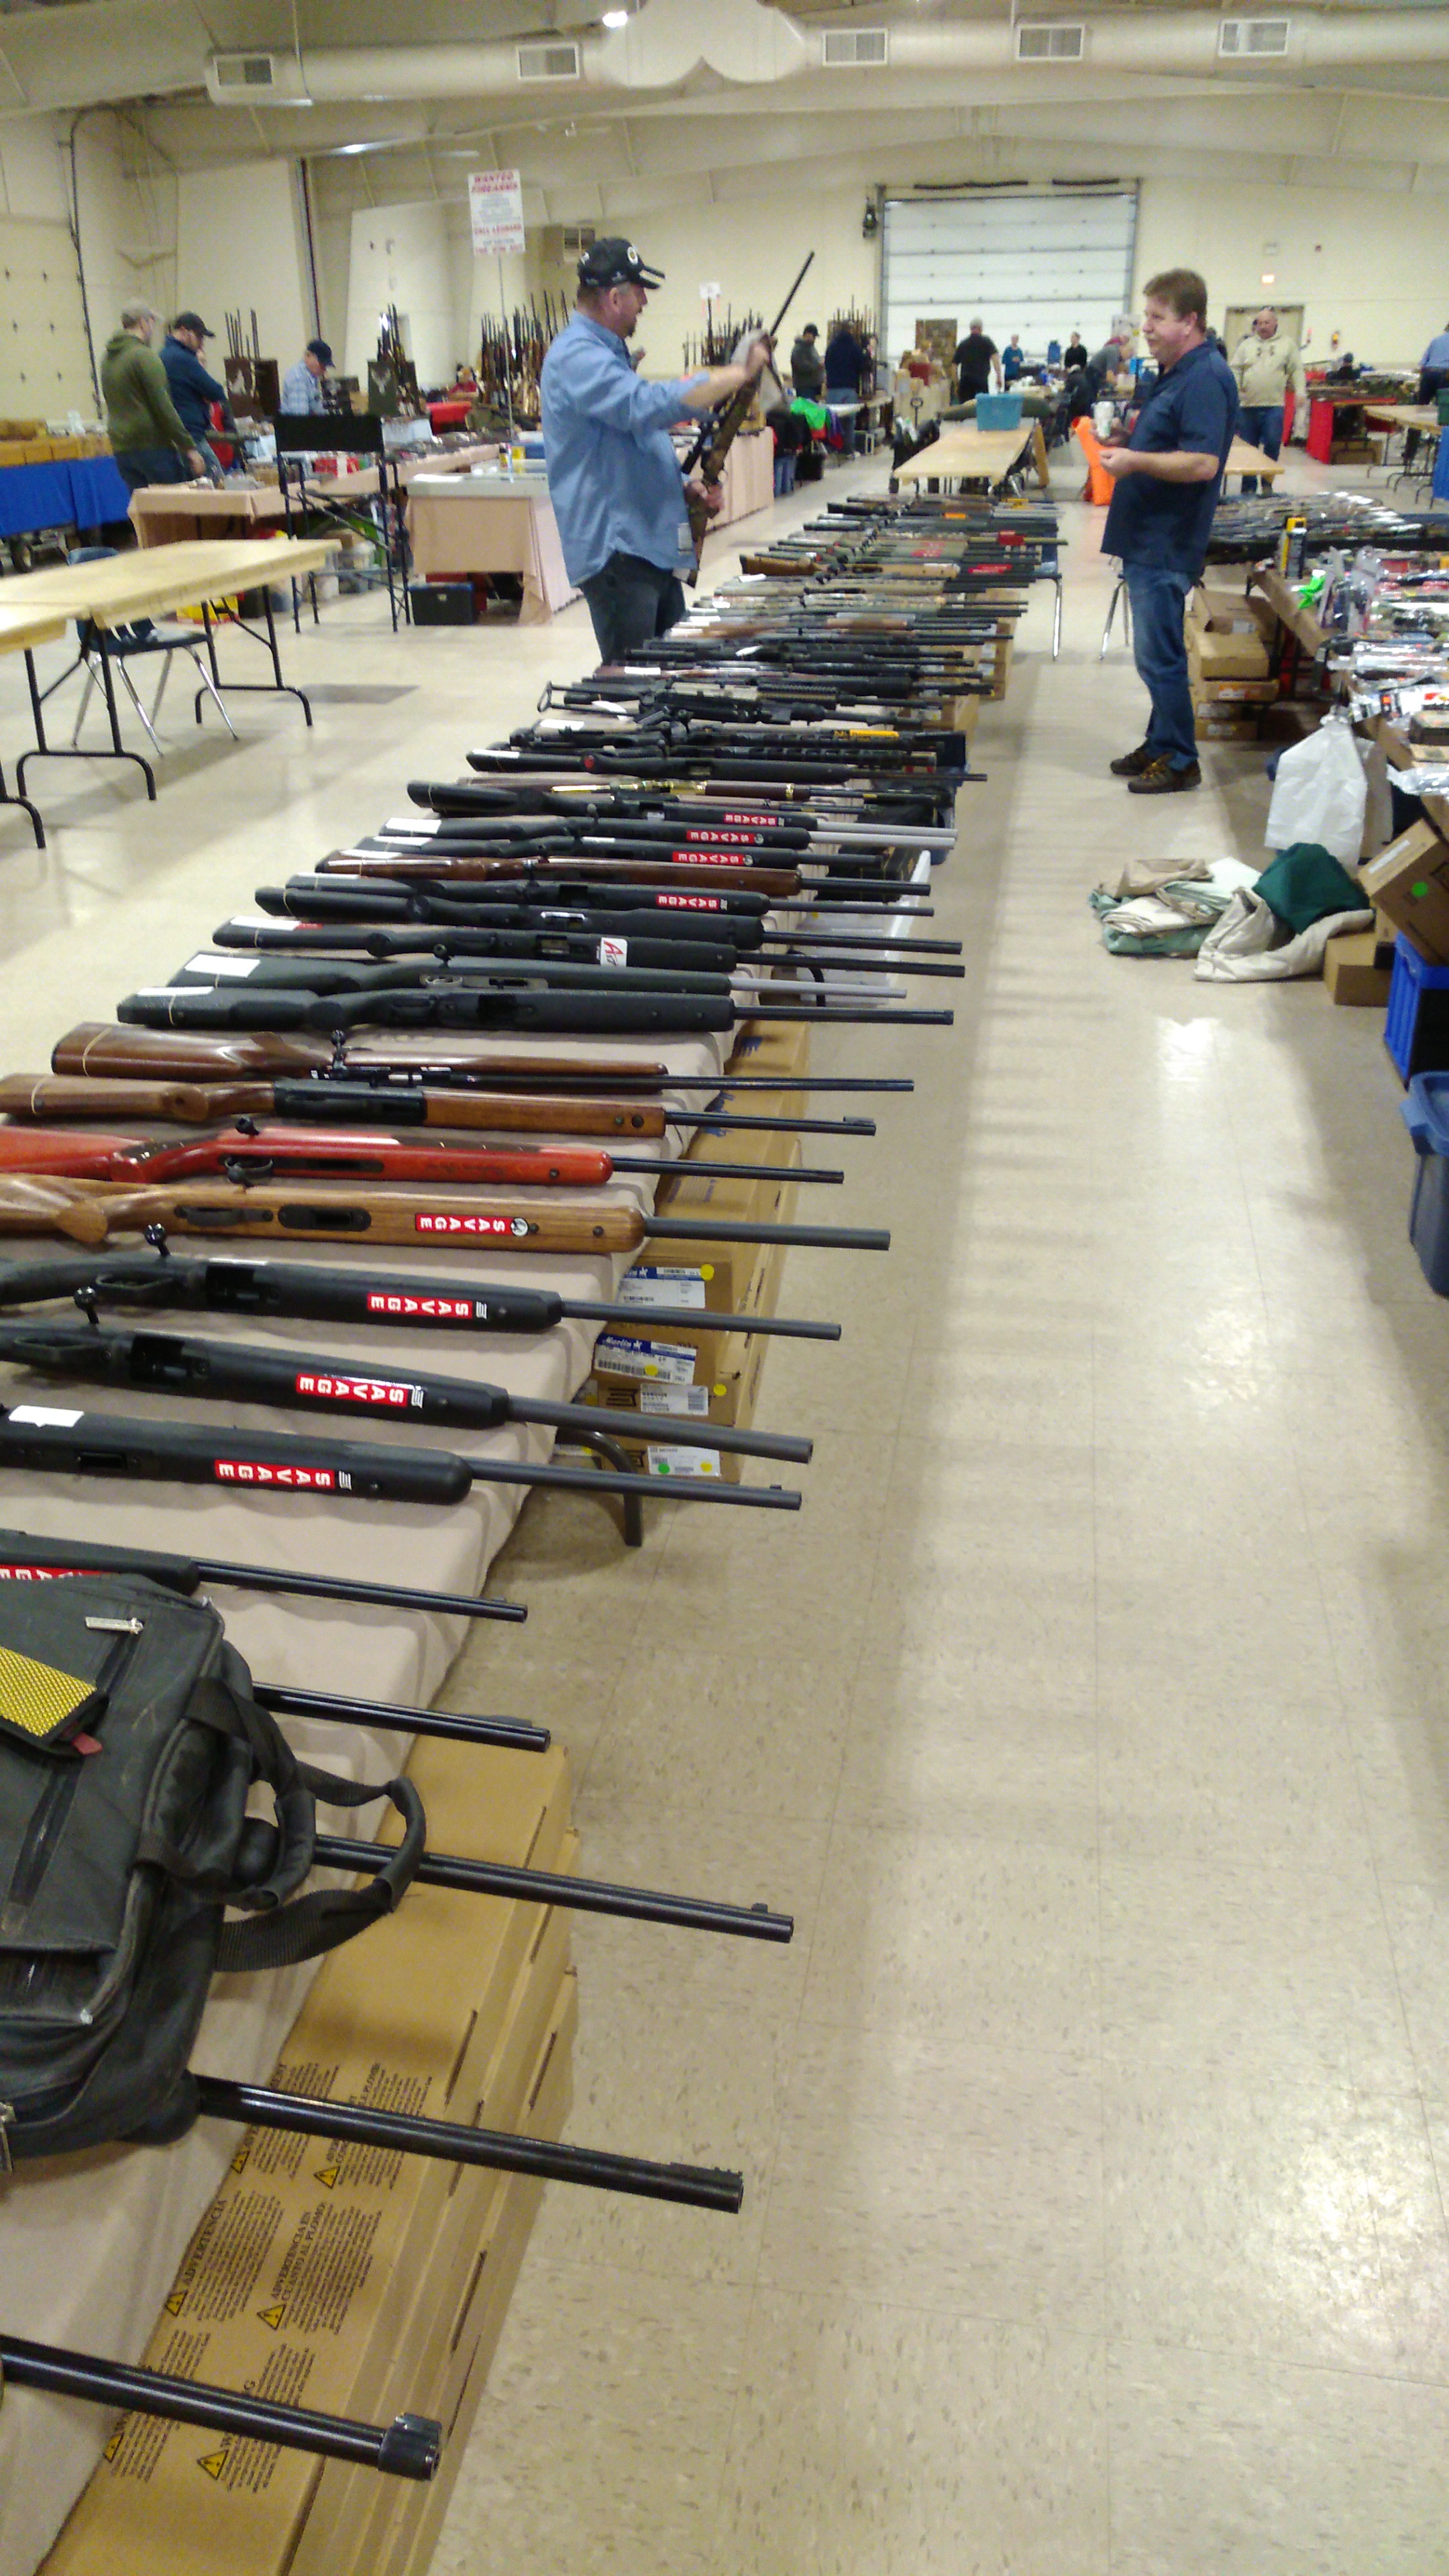 Setting up for the annual gun show on Friday afternoon